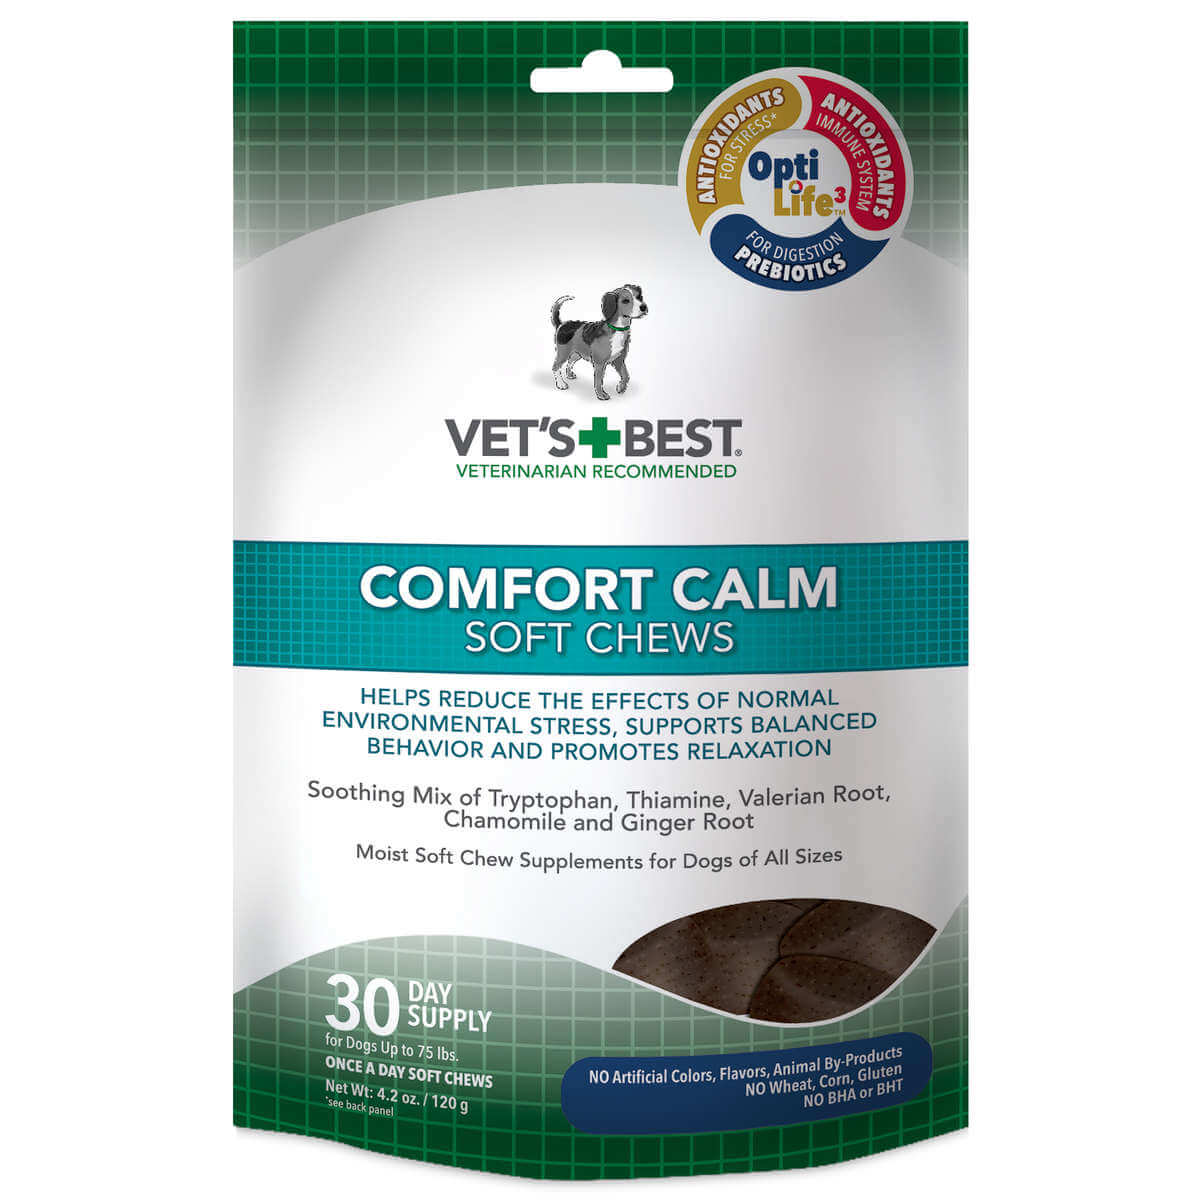 Vet's Best Comfort Calm Dog Soft Chews